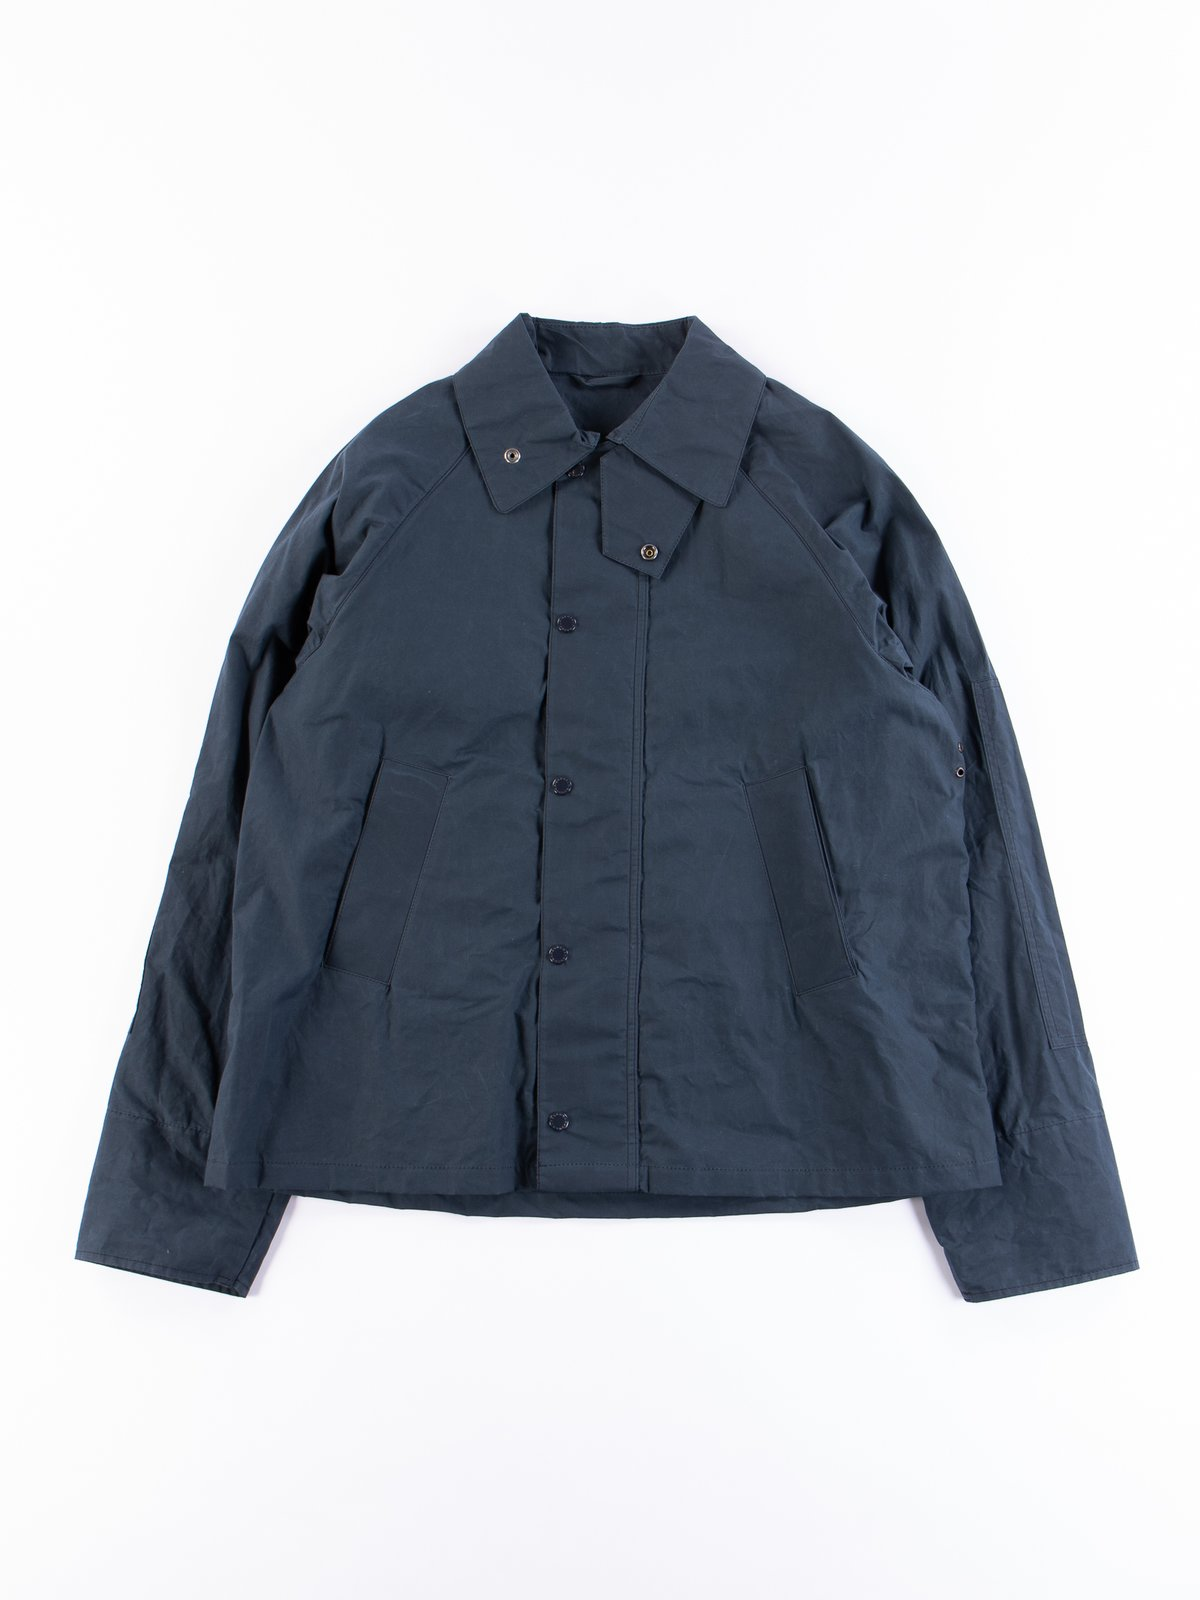 Navy Unlined Graham Jacket - Image 1